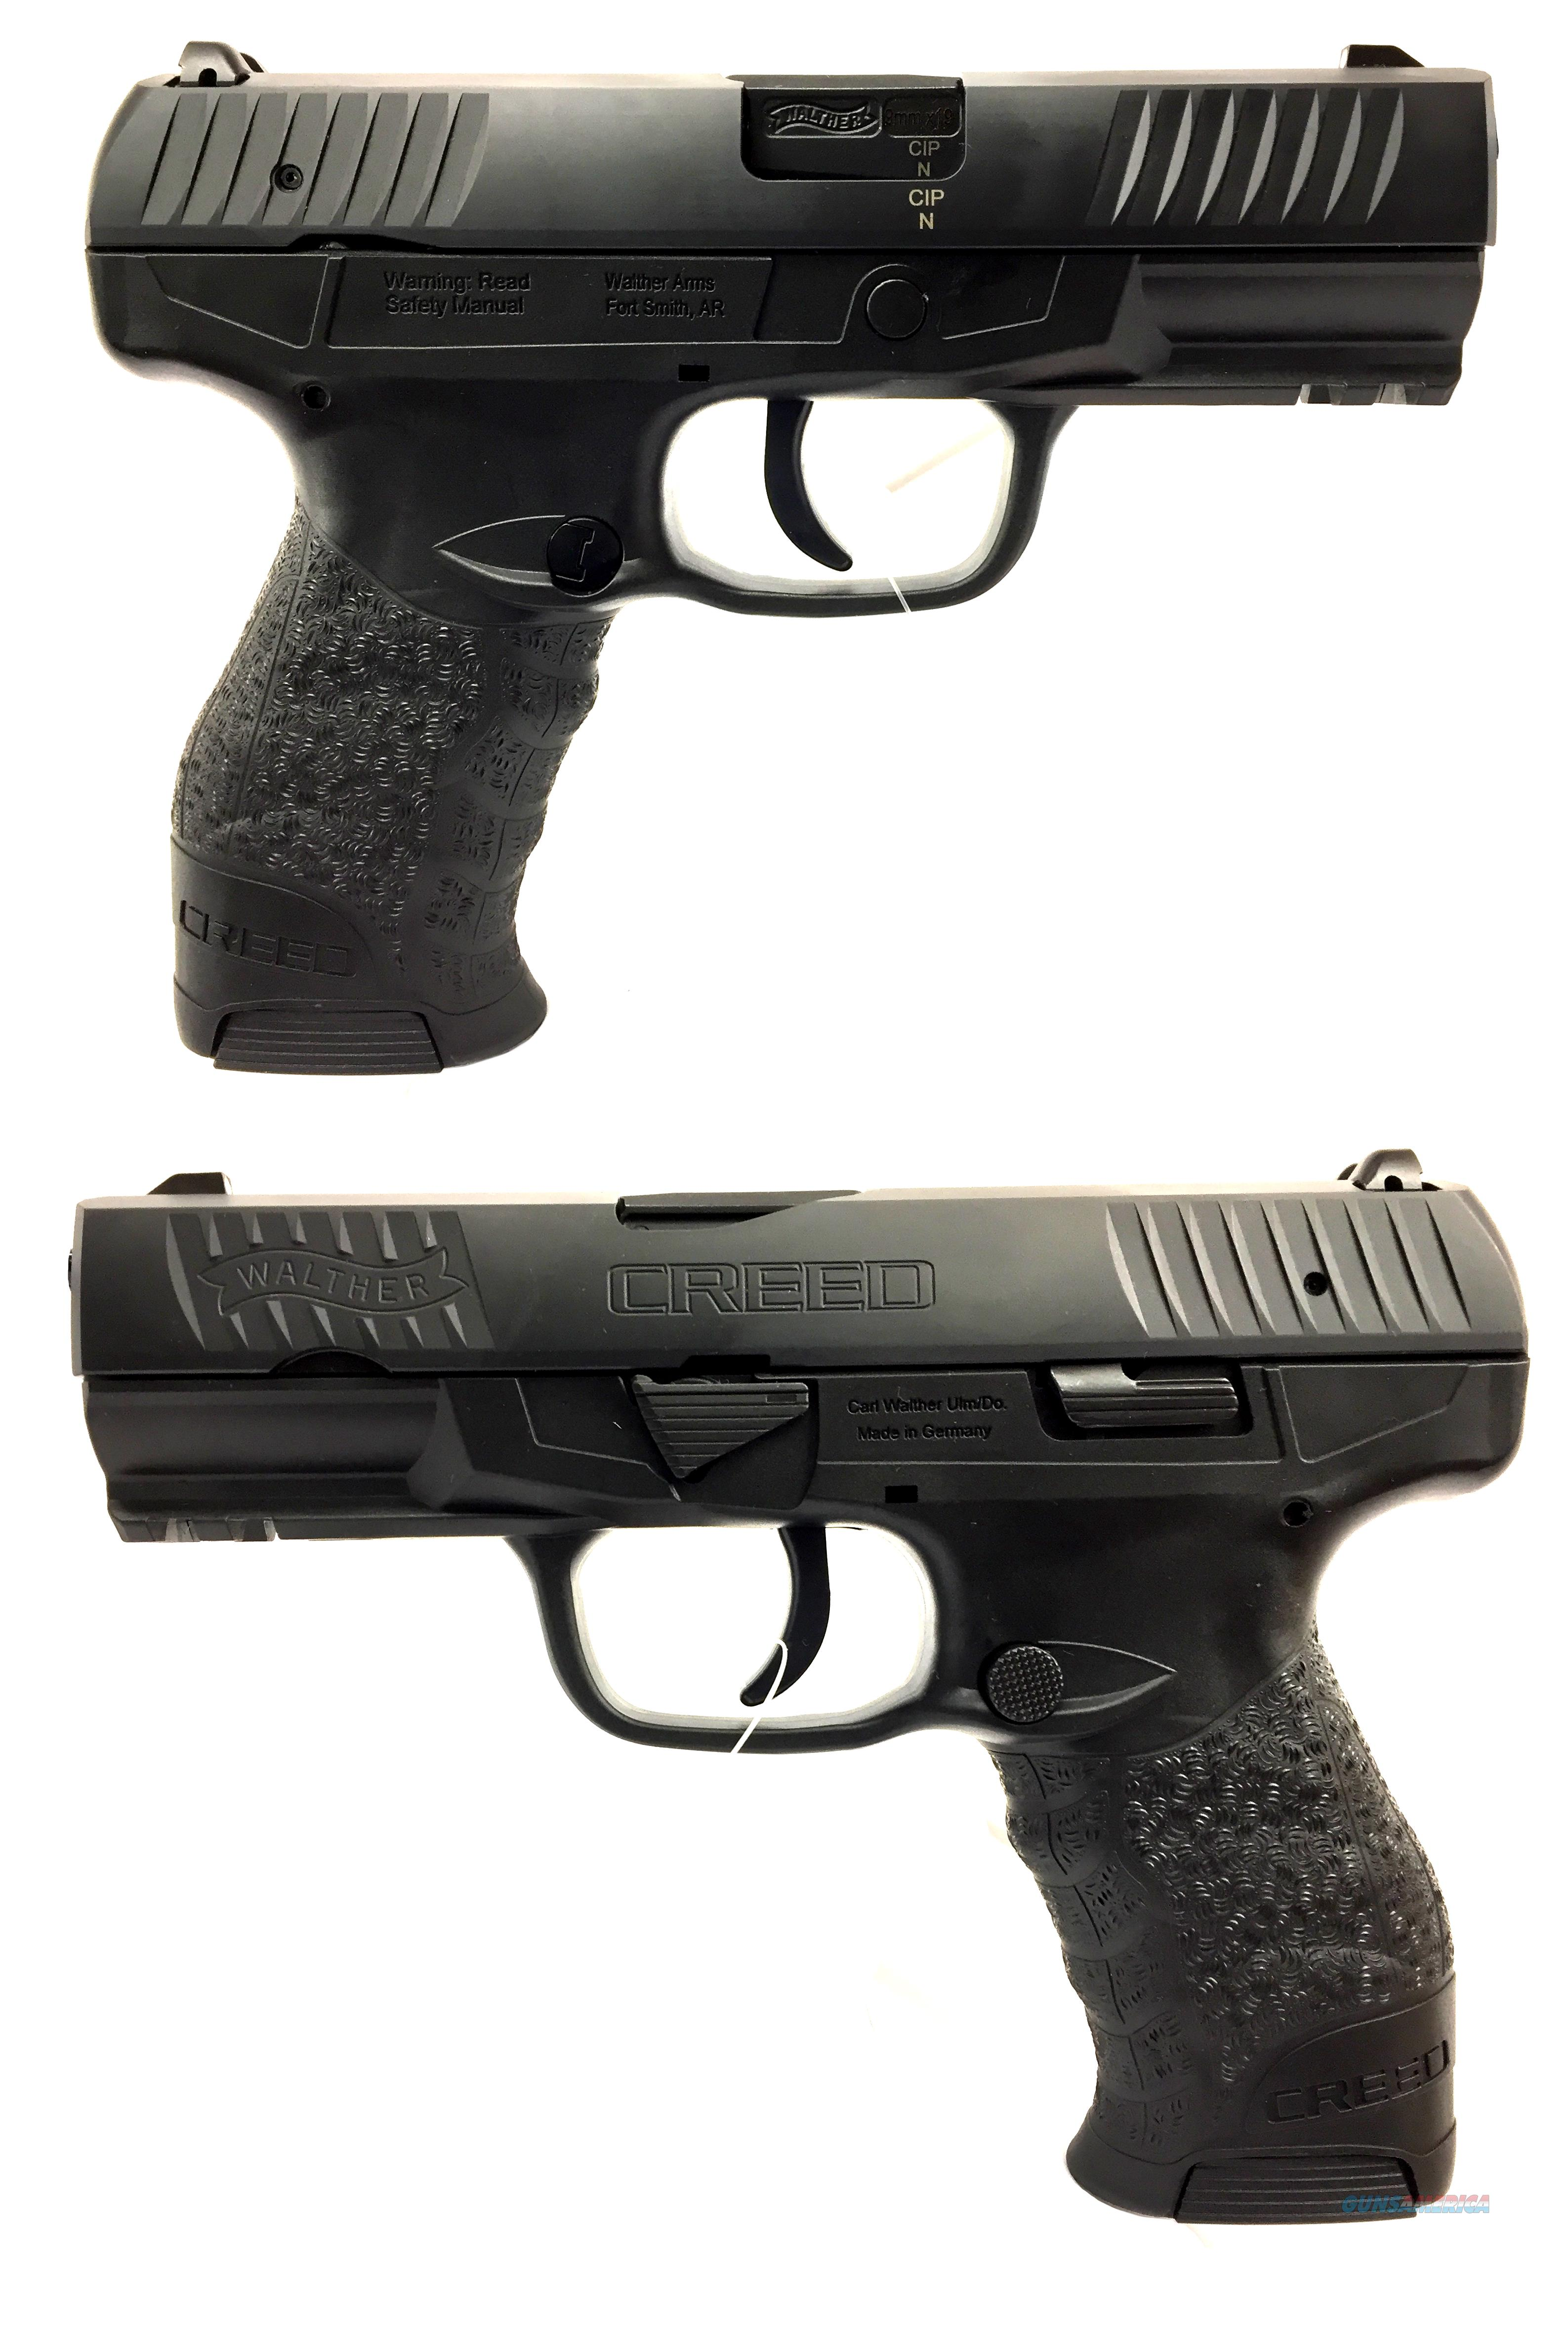 Walther Creed 9MM Semi-Automatic Pistol  Guns > Pistols > Walther Pistols > Post WWII > Creed